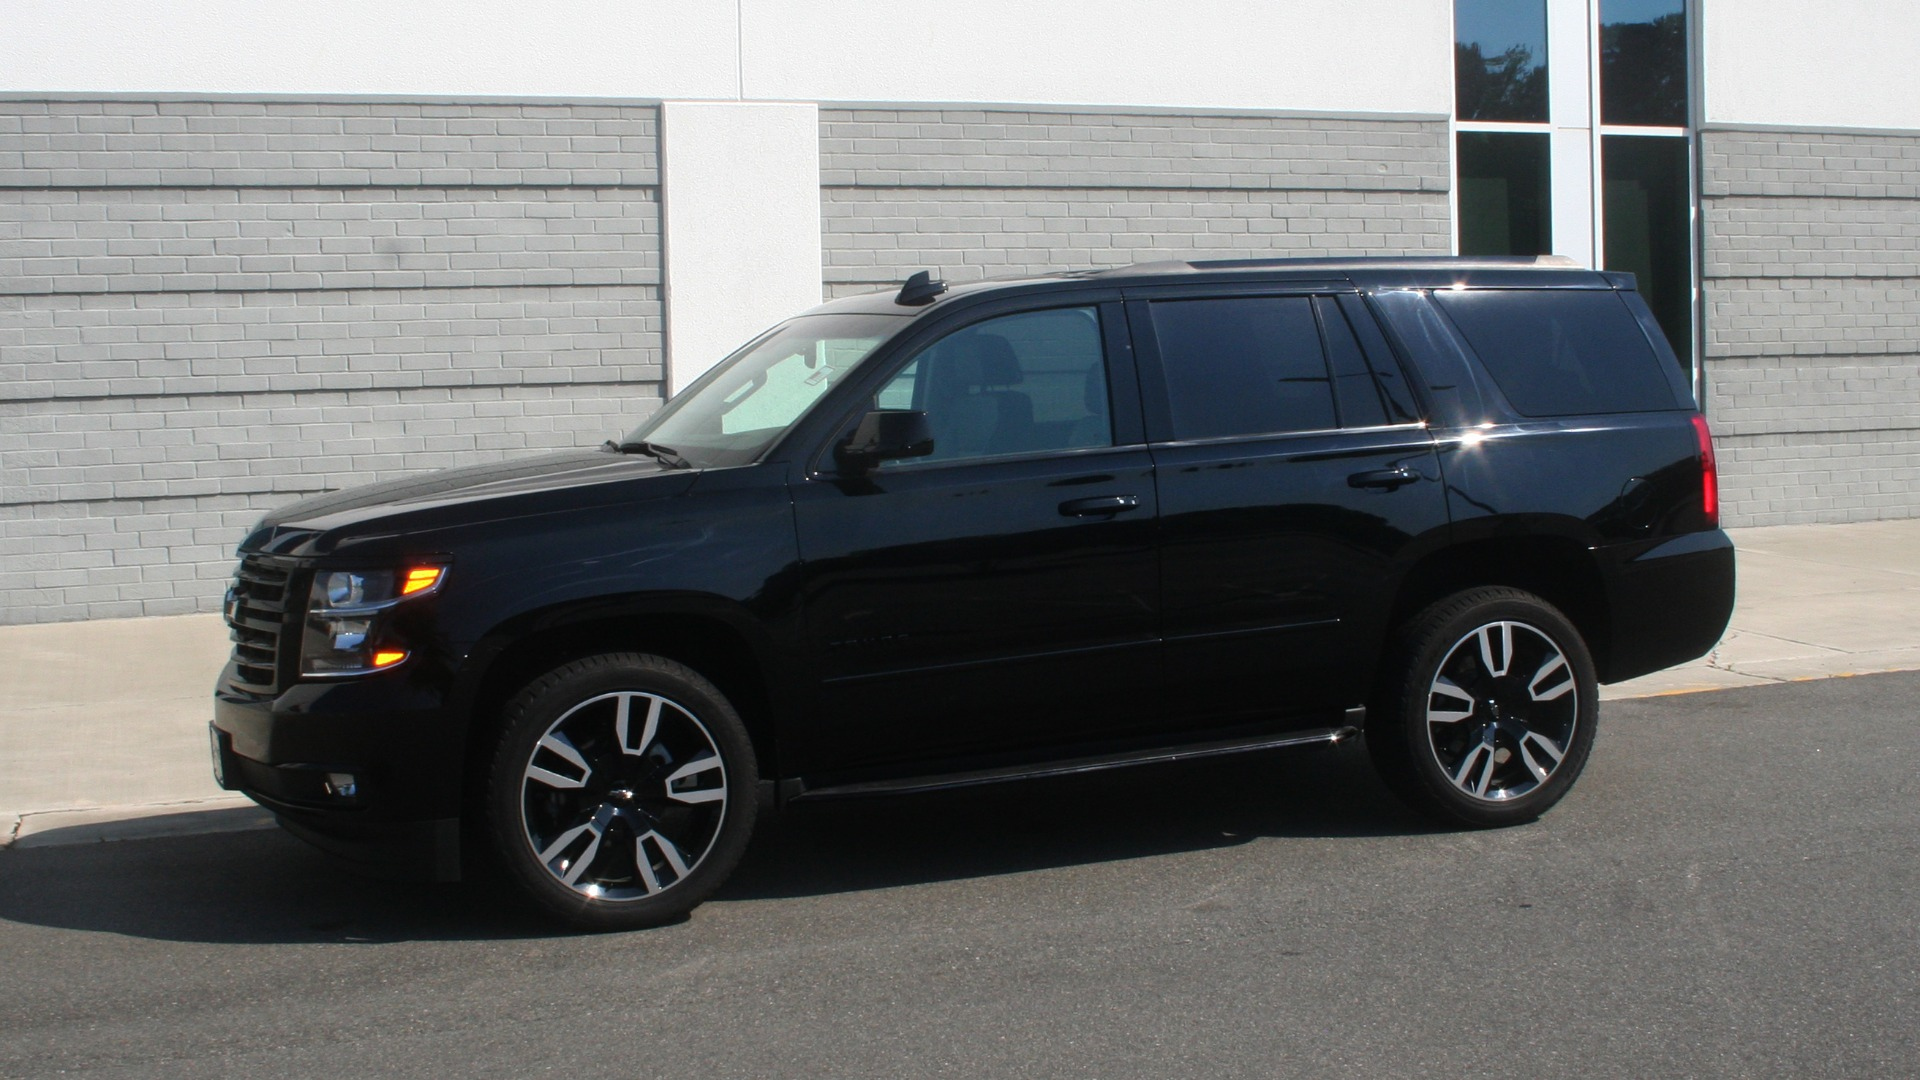 Used 2018 Chevrolet TAHOE PREMIER RST / 4X4 / NAV / BOSE / SUNROOF / 3-ROW / REARVIEW for sale $65,995 at Formula Imports in Charlotte NC 28227 4